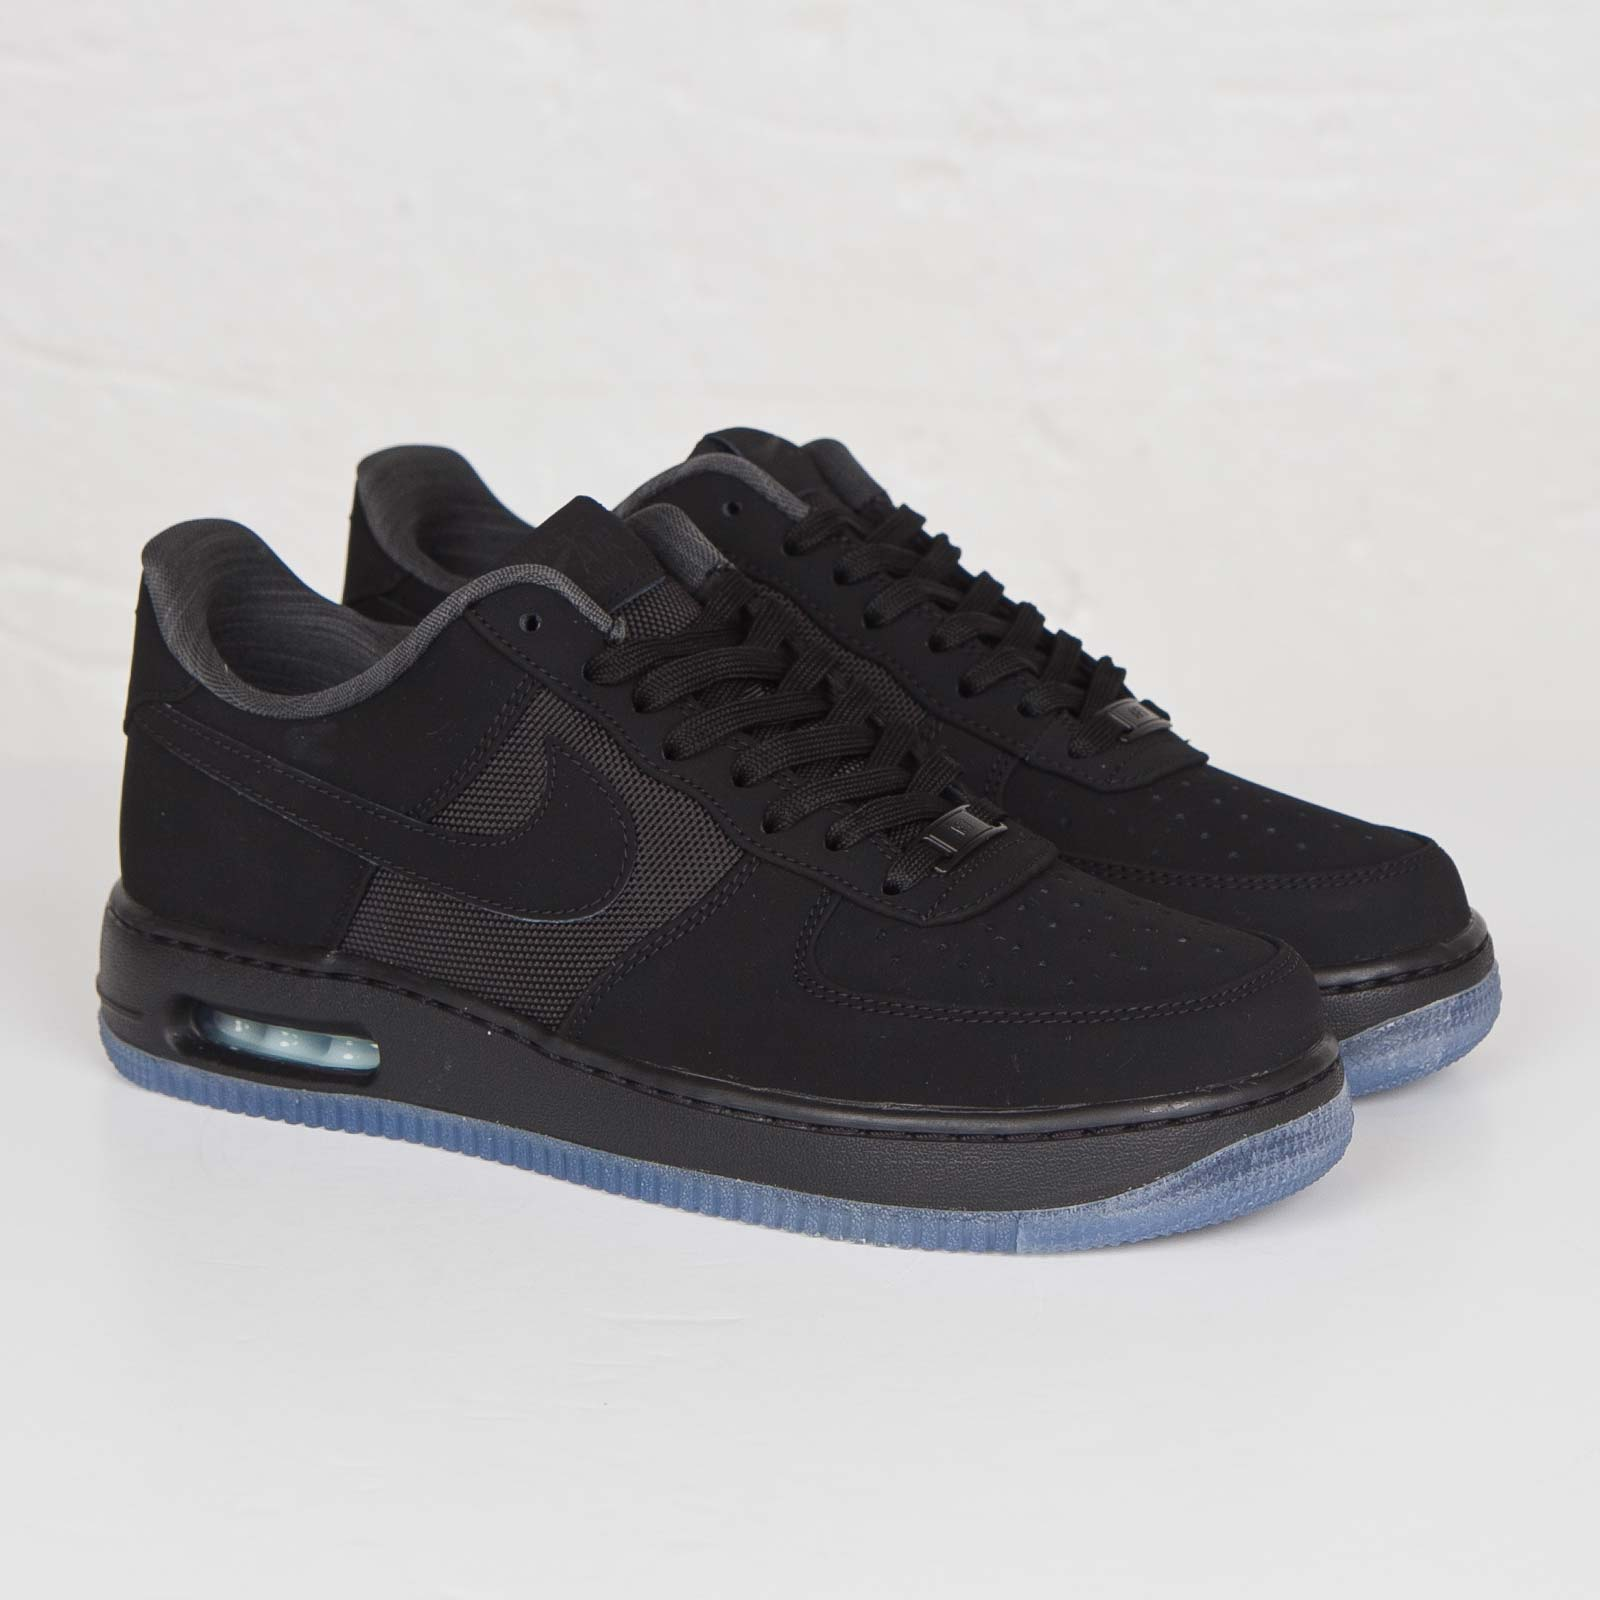 bas prix 1fc01 352b3 Nike Air Force 1 Elite - 725146-001 - Sneakersnstuff ...